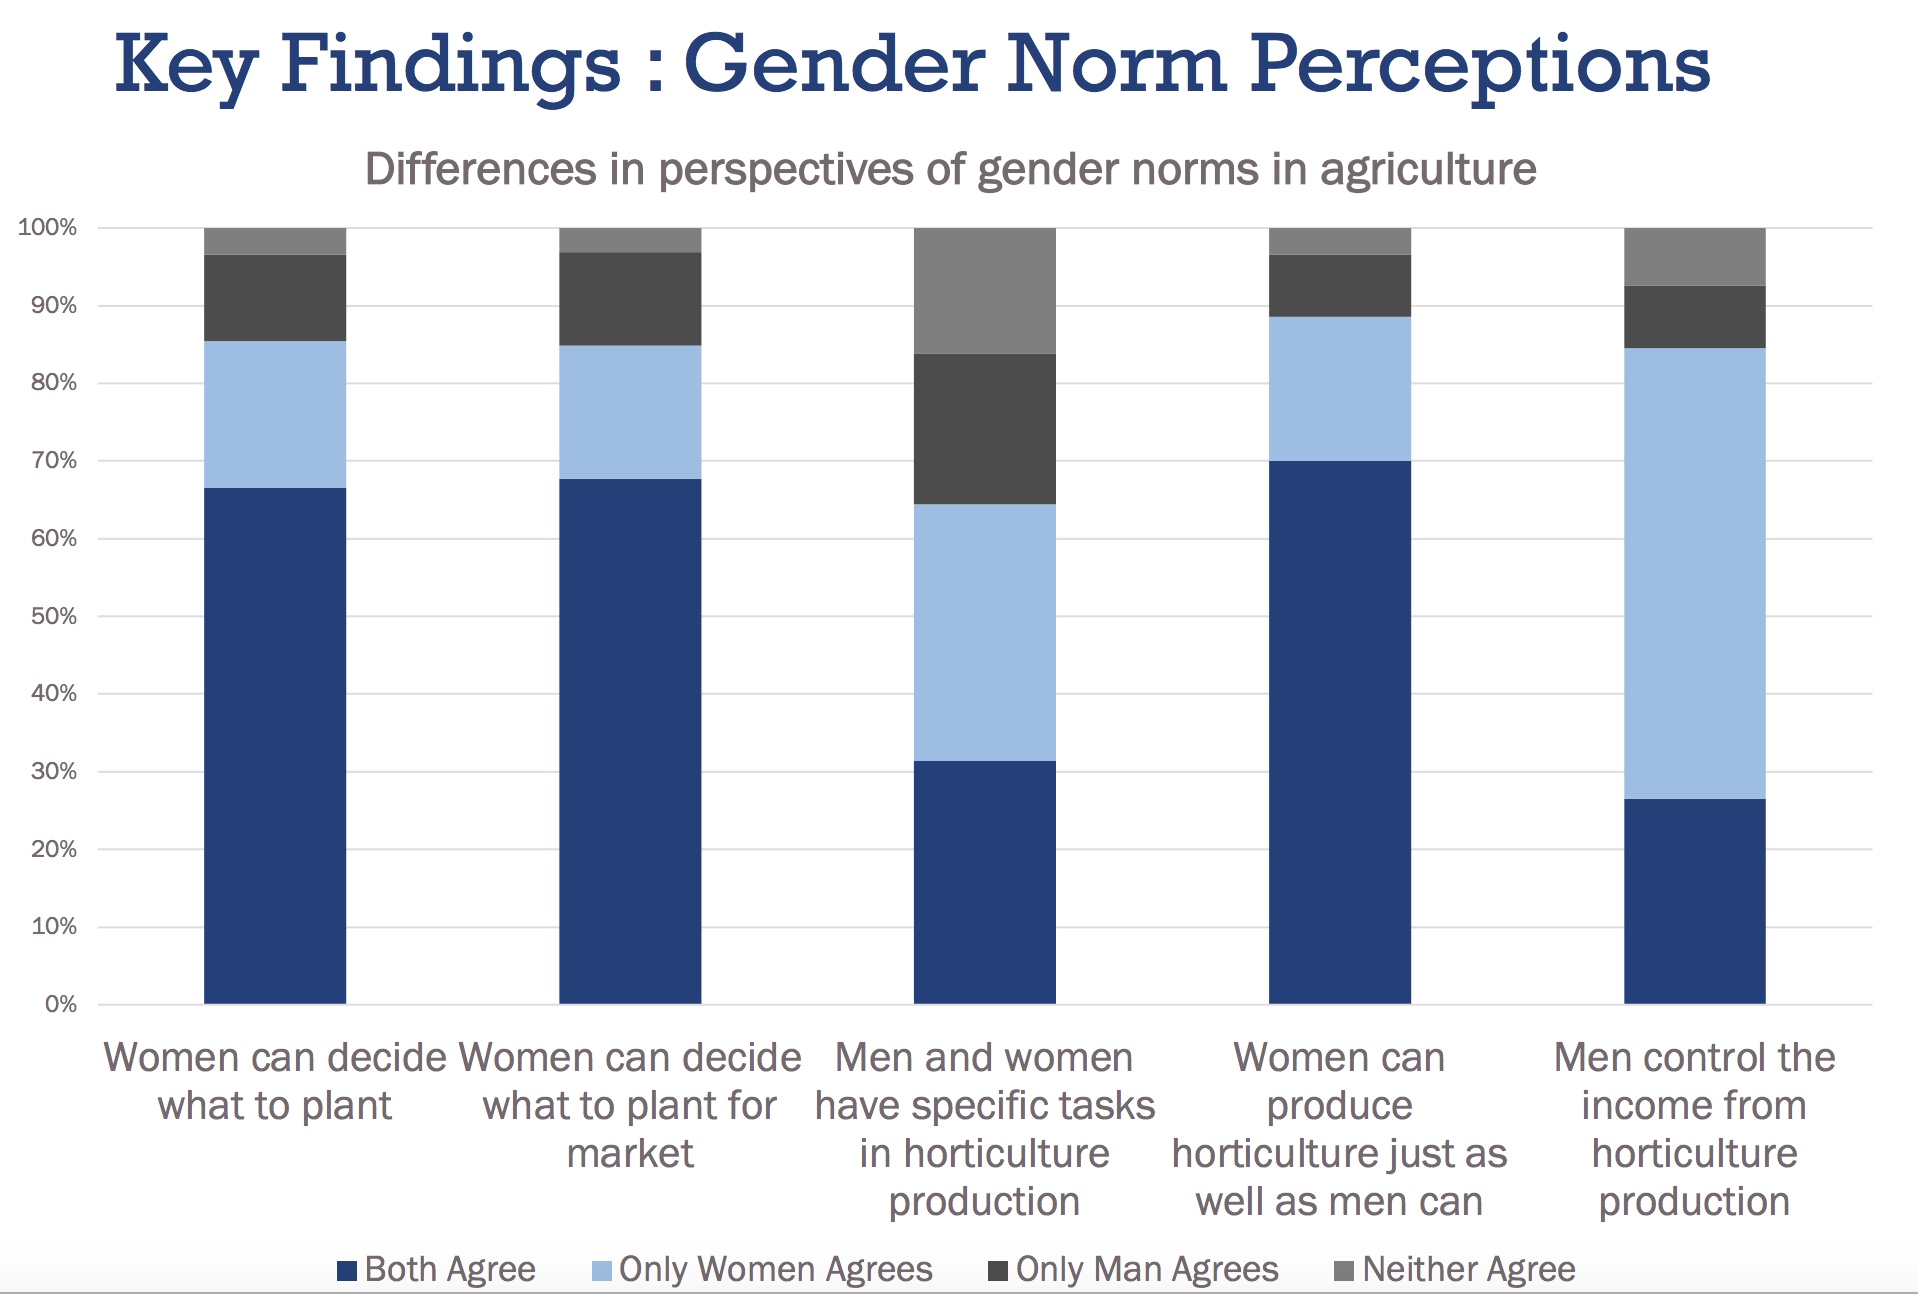 A bar graph depicting the key findings of how male and female partners perceive gender roles